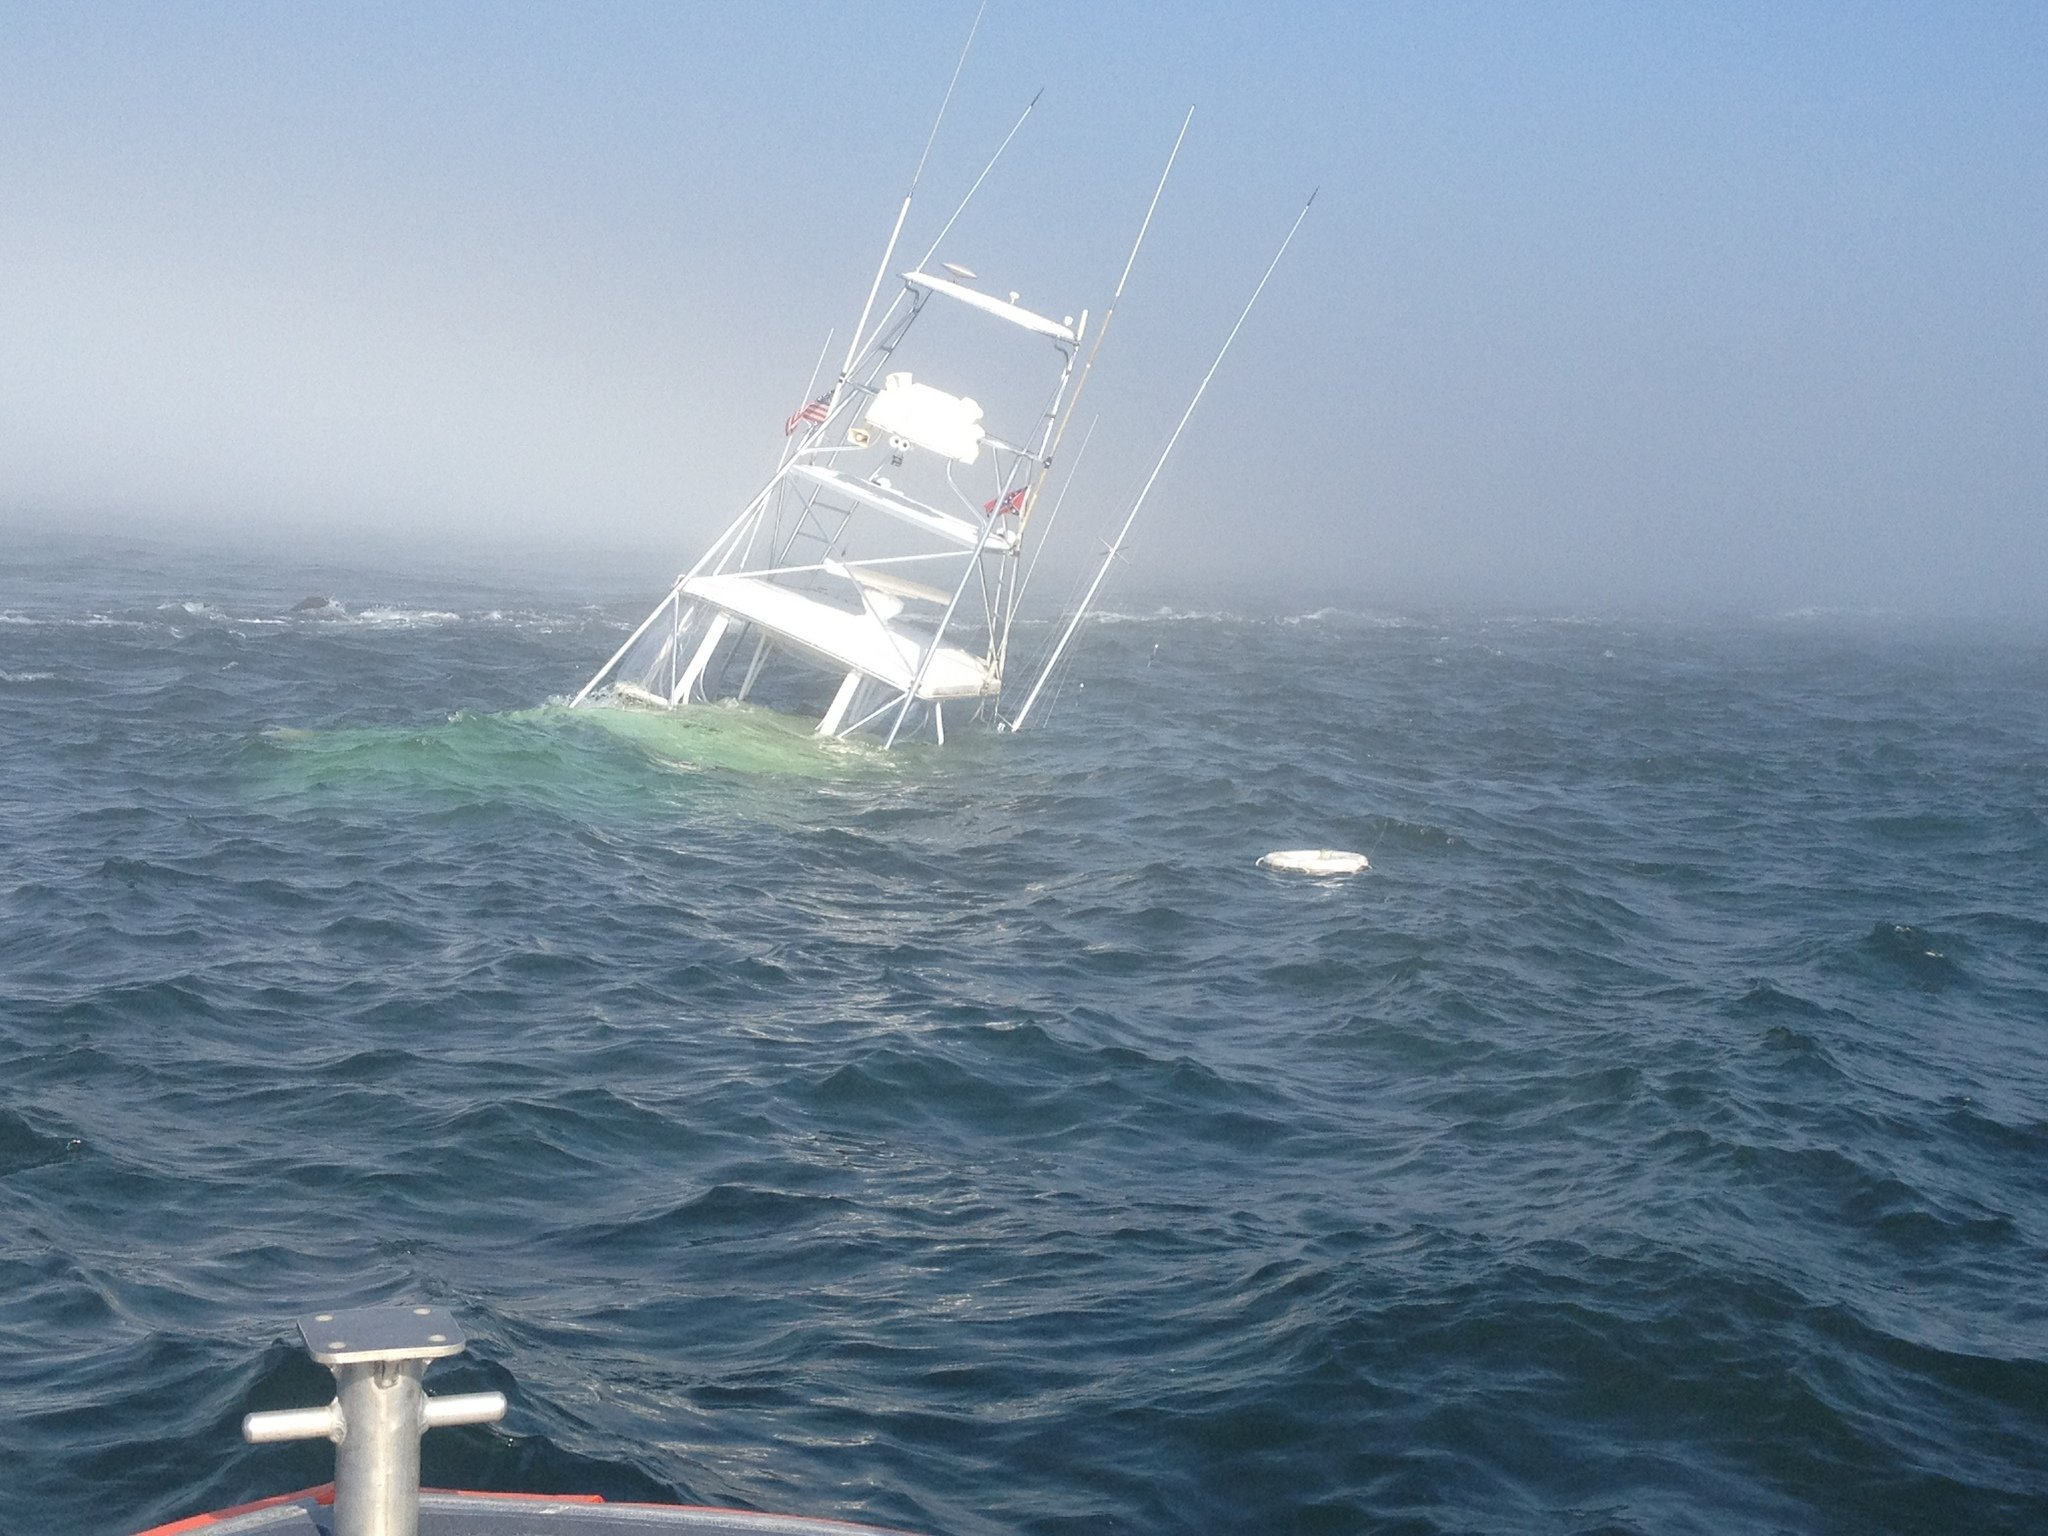 southern-comfort-fishing-boat-sinking-off-barnegat-light-inlet-343e1bd974c00b6a